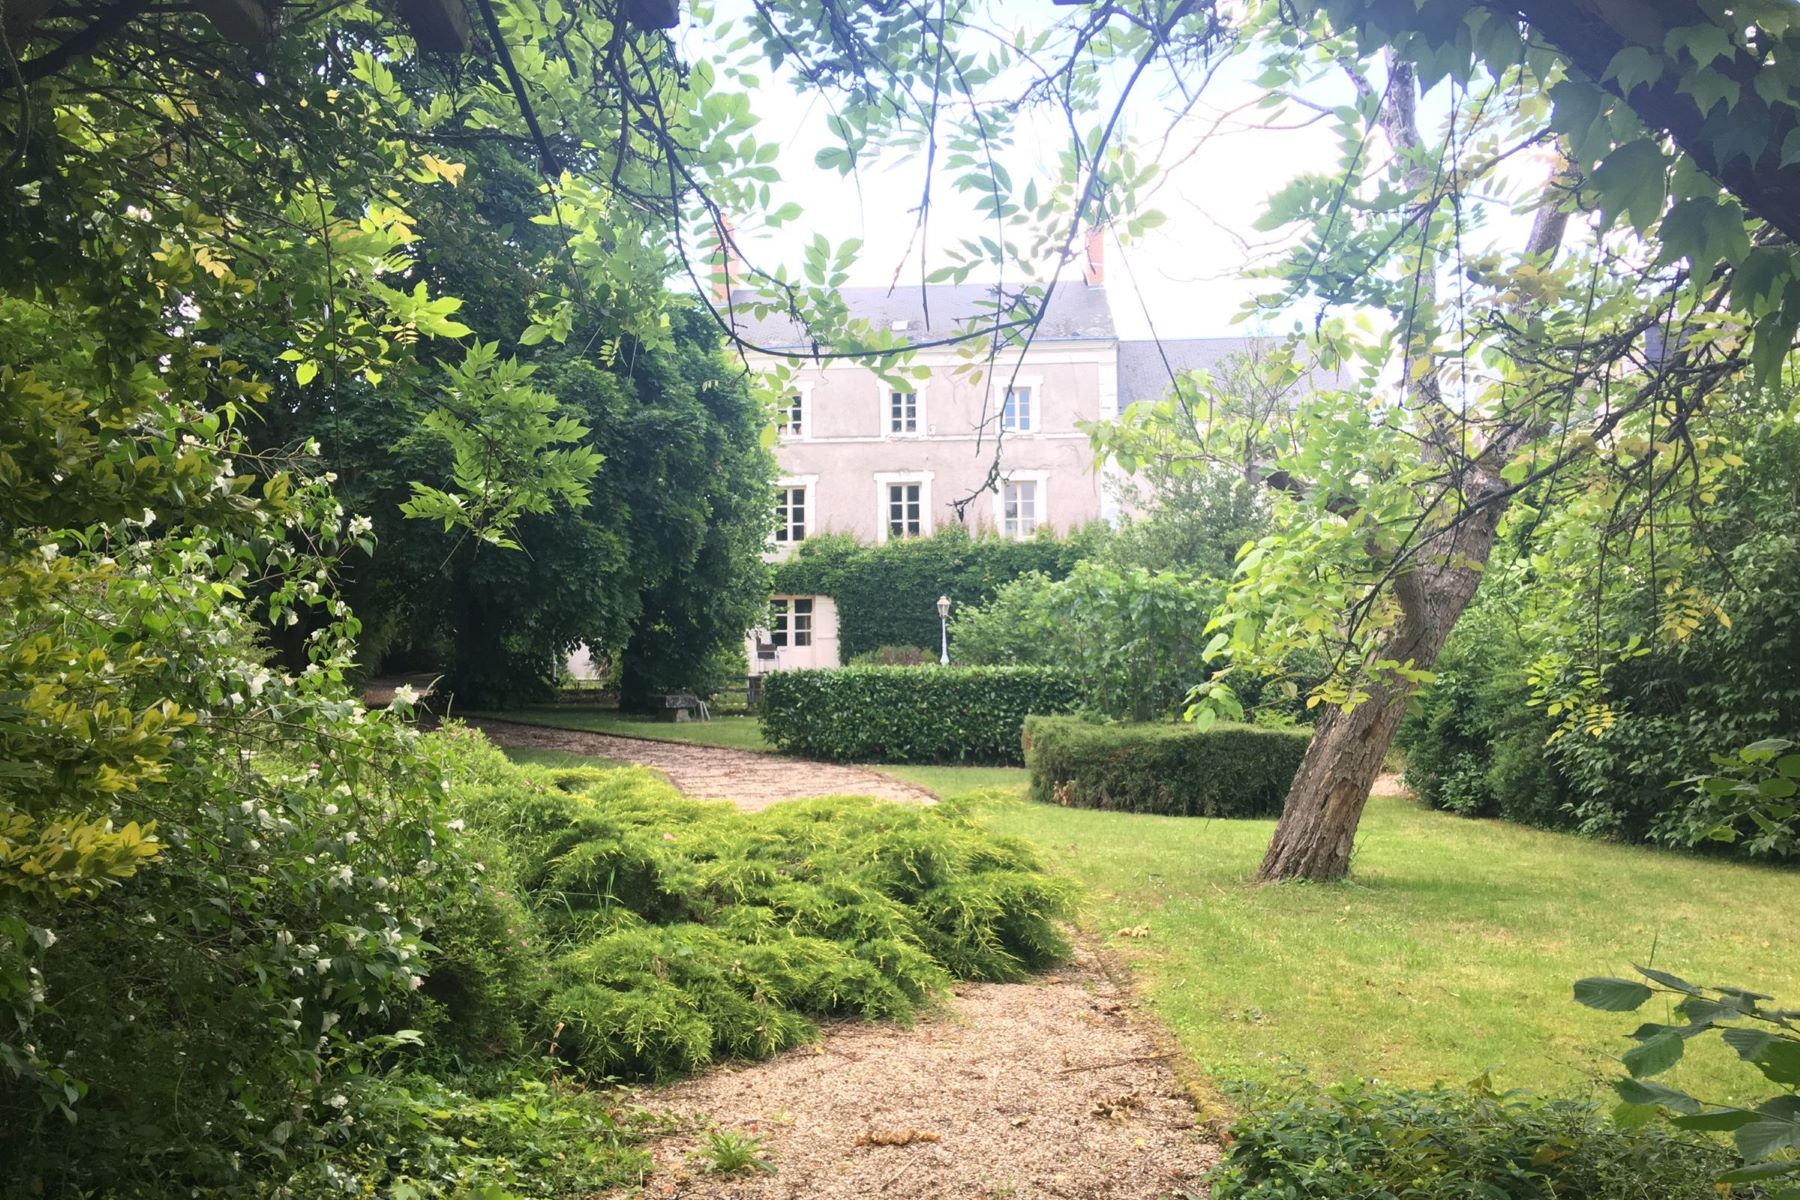 Single Family Homes for Active at Early 19th Mansion perfect for guesthouse Meusnes, Centre 41130 France